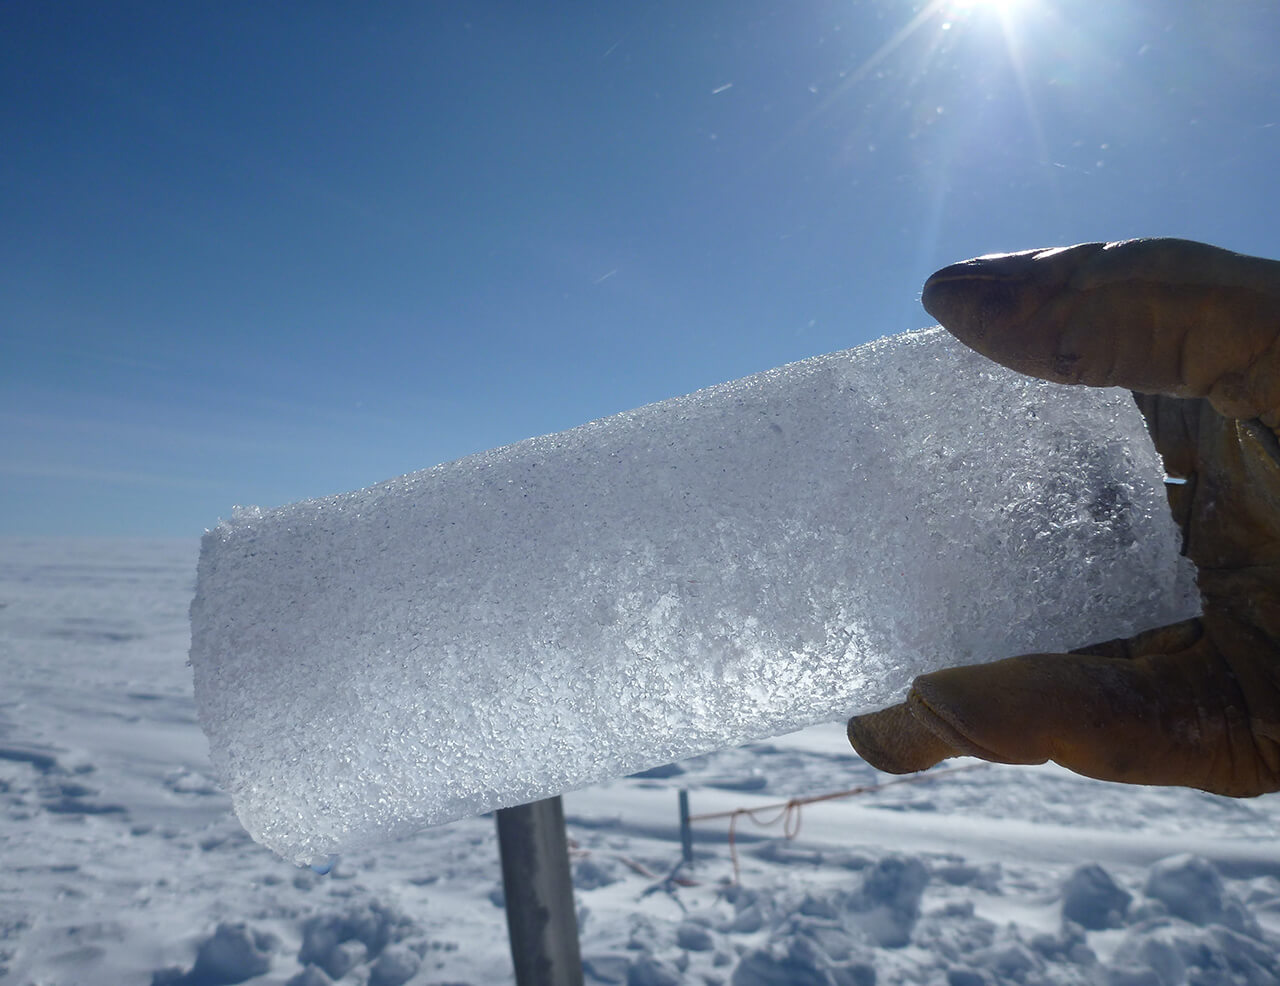 Photograph of a hand holding an ice core.